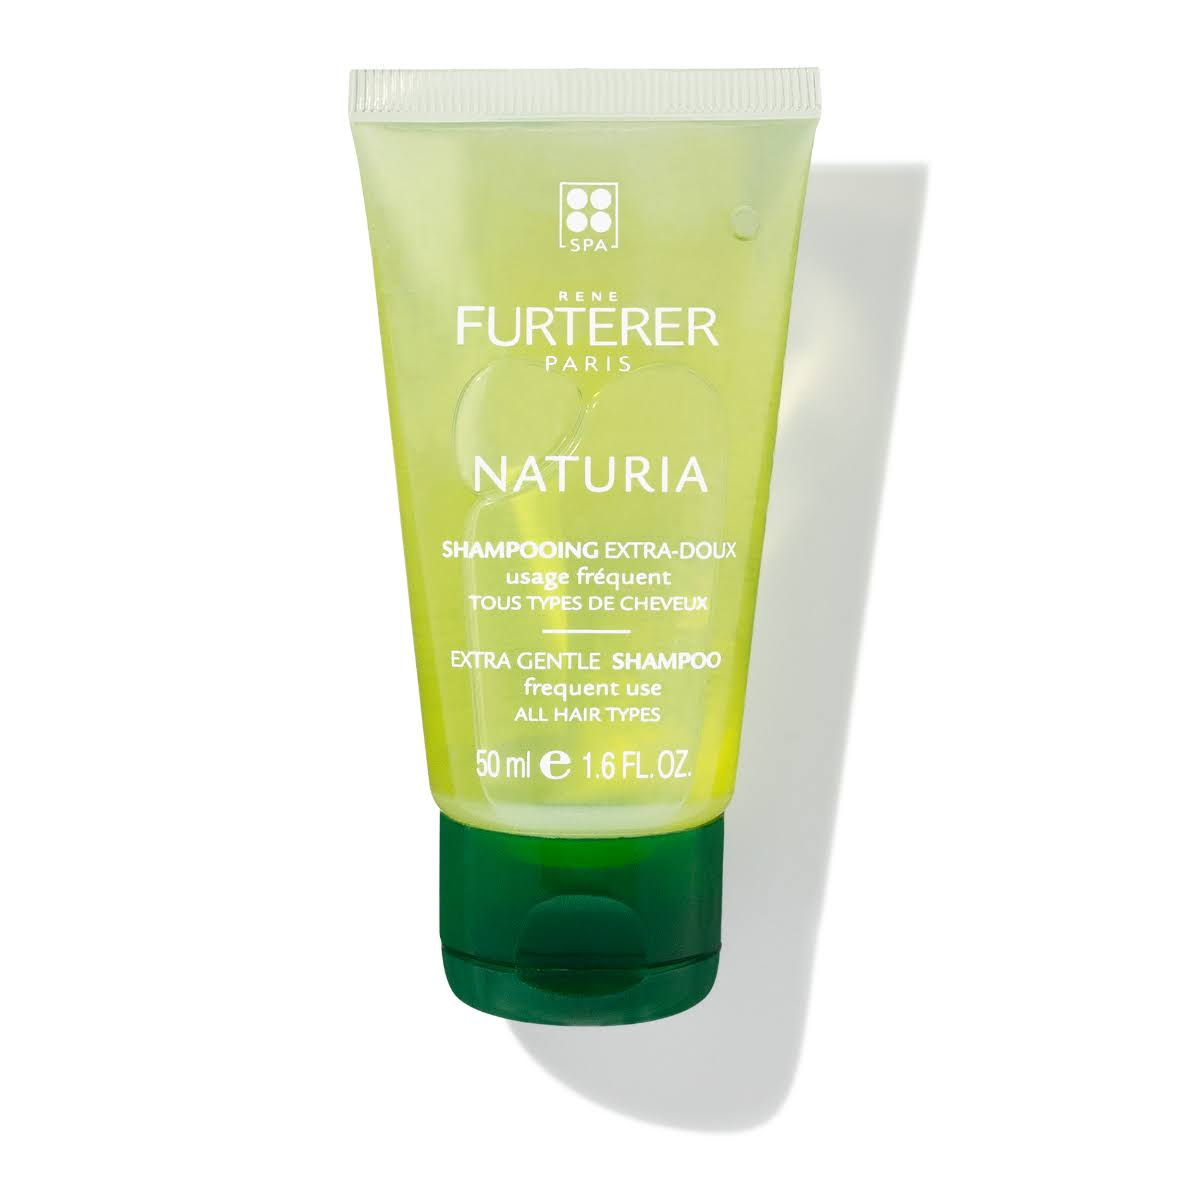 Furterer Naturia Extra Gentle Shampoo - 50ml